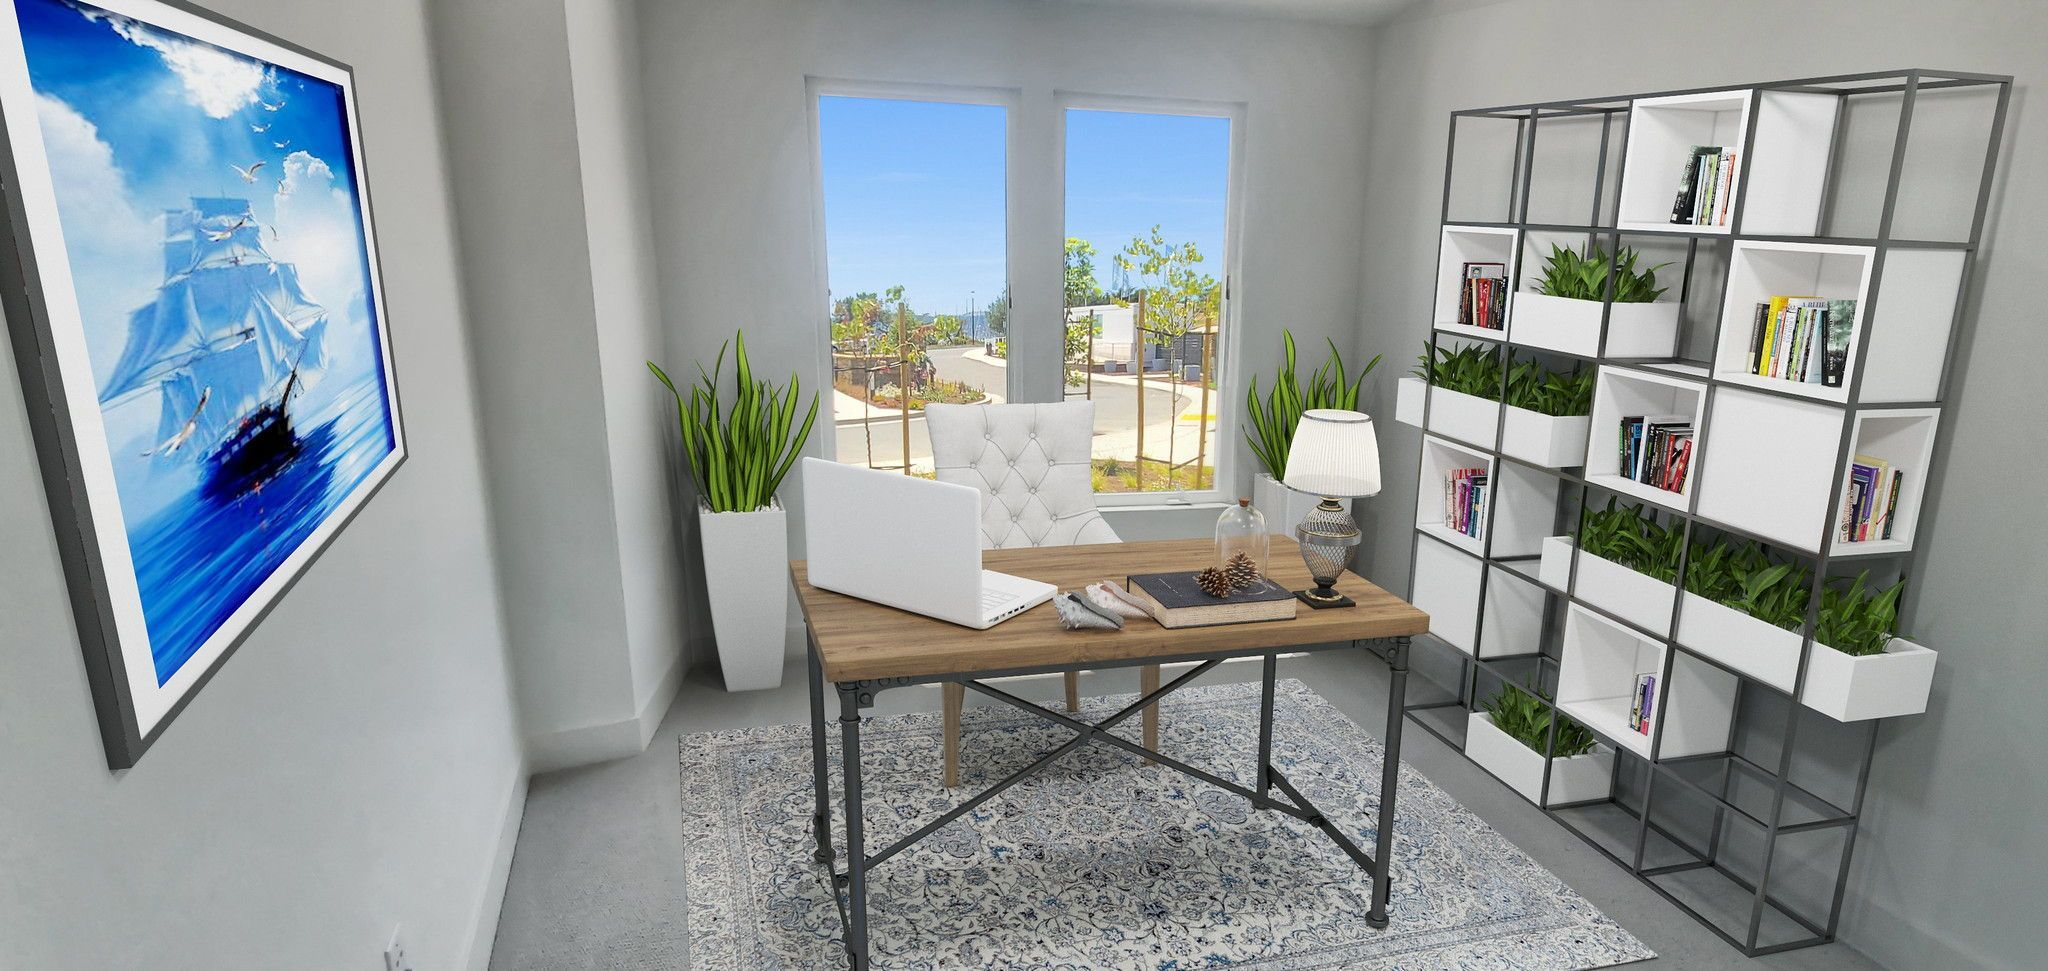 Waterline in Point Richmond, CA by Shea Homes | Residence 4 Home Office  #SheaHomes #SheaHomesNorCal #SheaHomeowners #SheaNorCal #LiveTheSheaDifference #NorCalHomes #NorCalRealEstate #BayAreaRealEstate #BayAreaNewHomes #HomeDesignInspiration #HomeInspiration #Waterline #PointRichmond Sales: Shea Homes Marketing Company (CalDRE #01378646); Construction: Shea Homes Limited Partnership (CSLB #855368). Equal Housing Opportunity.